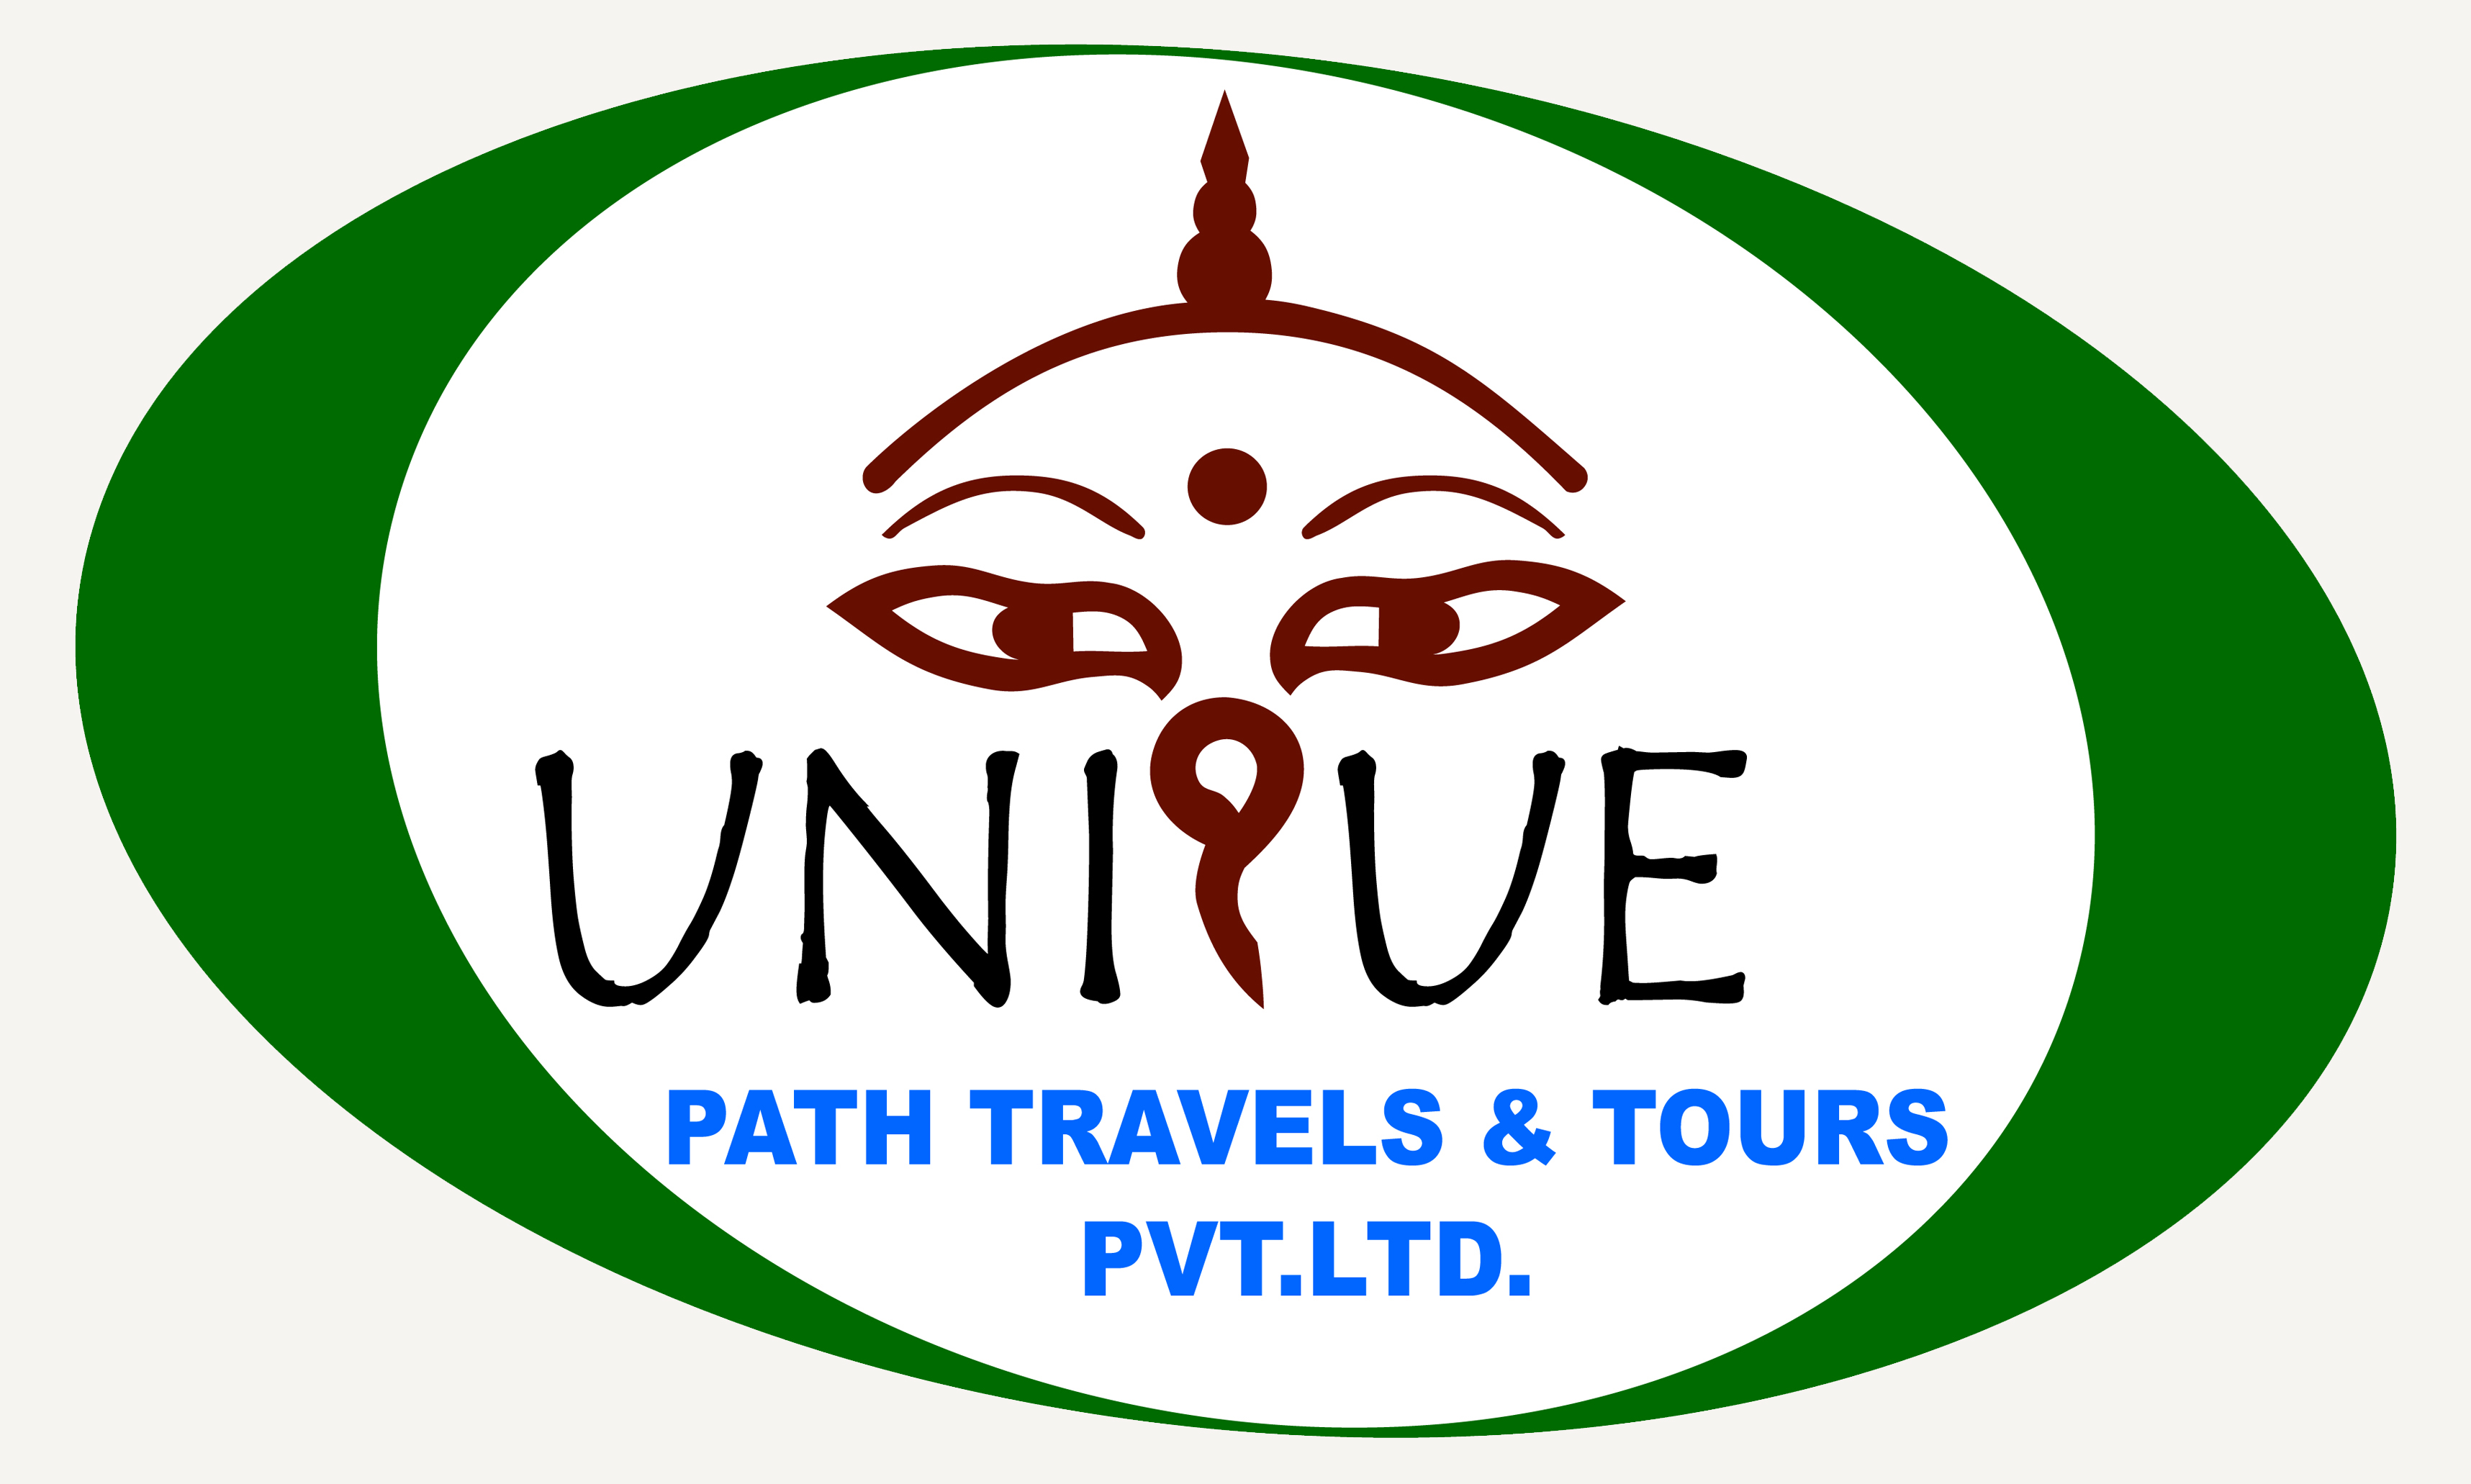 Unique-Path-Travel